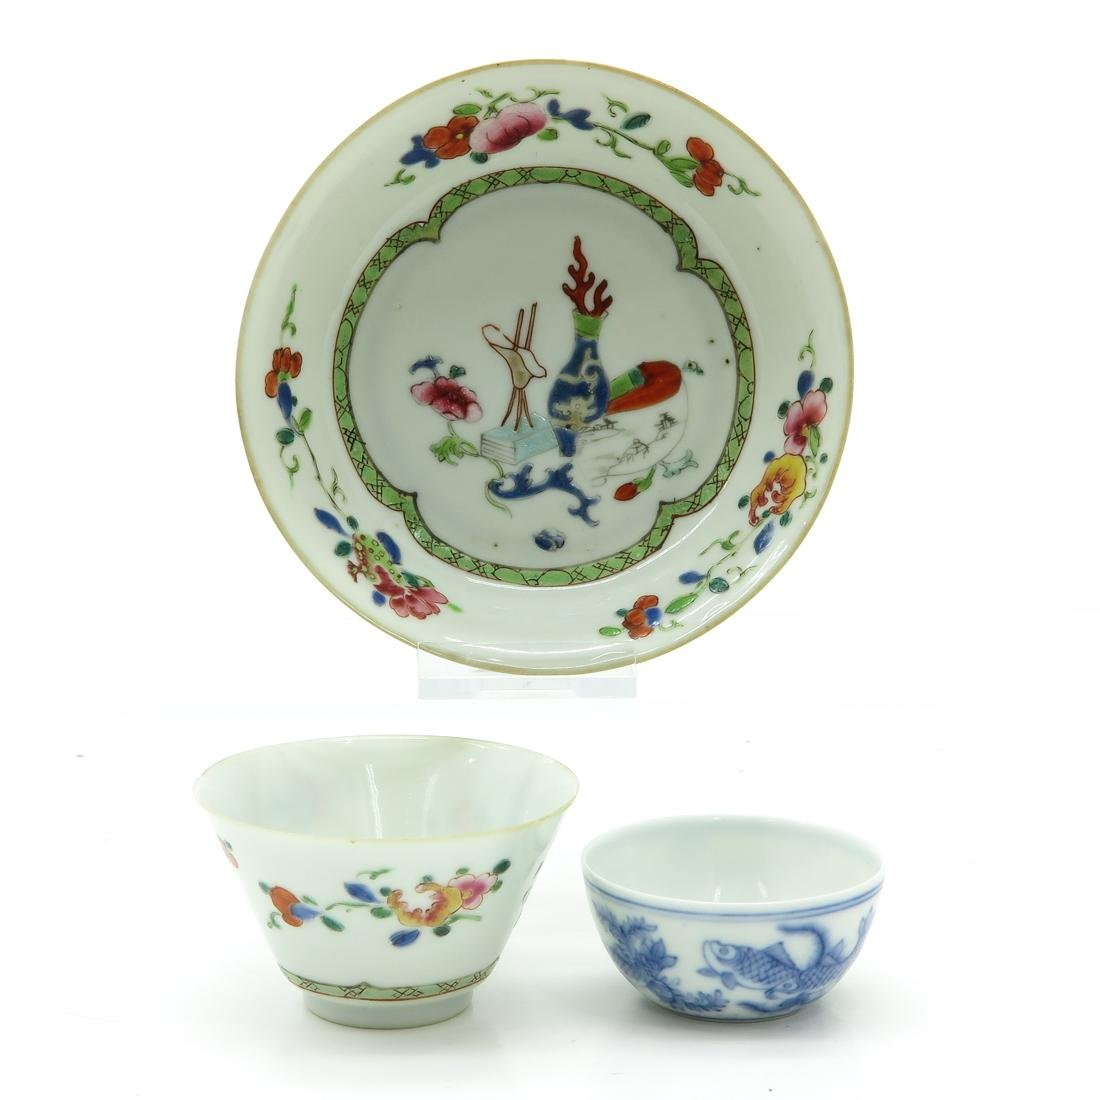 Cups and Saucer - 4